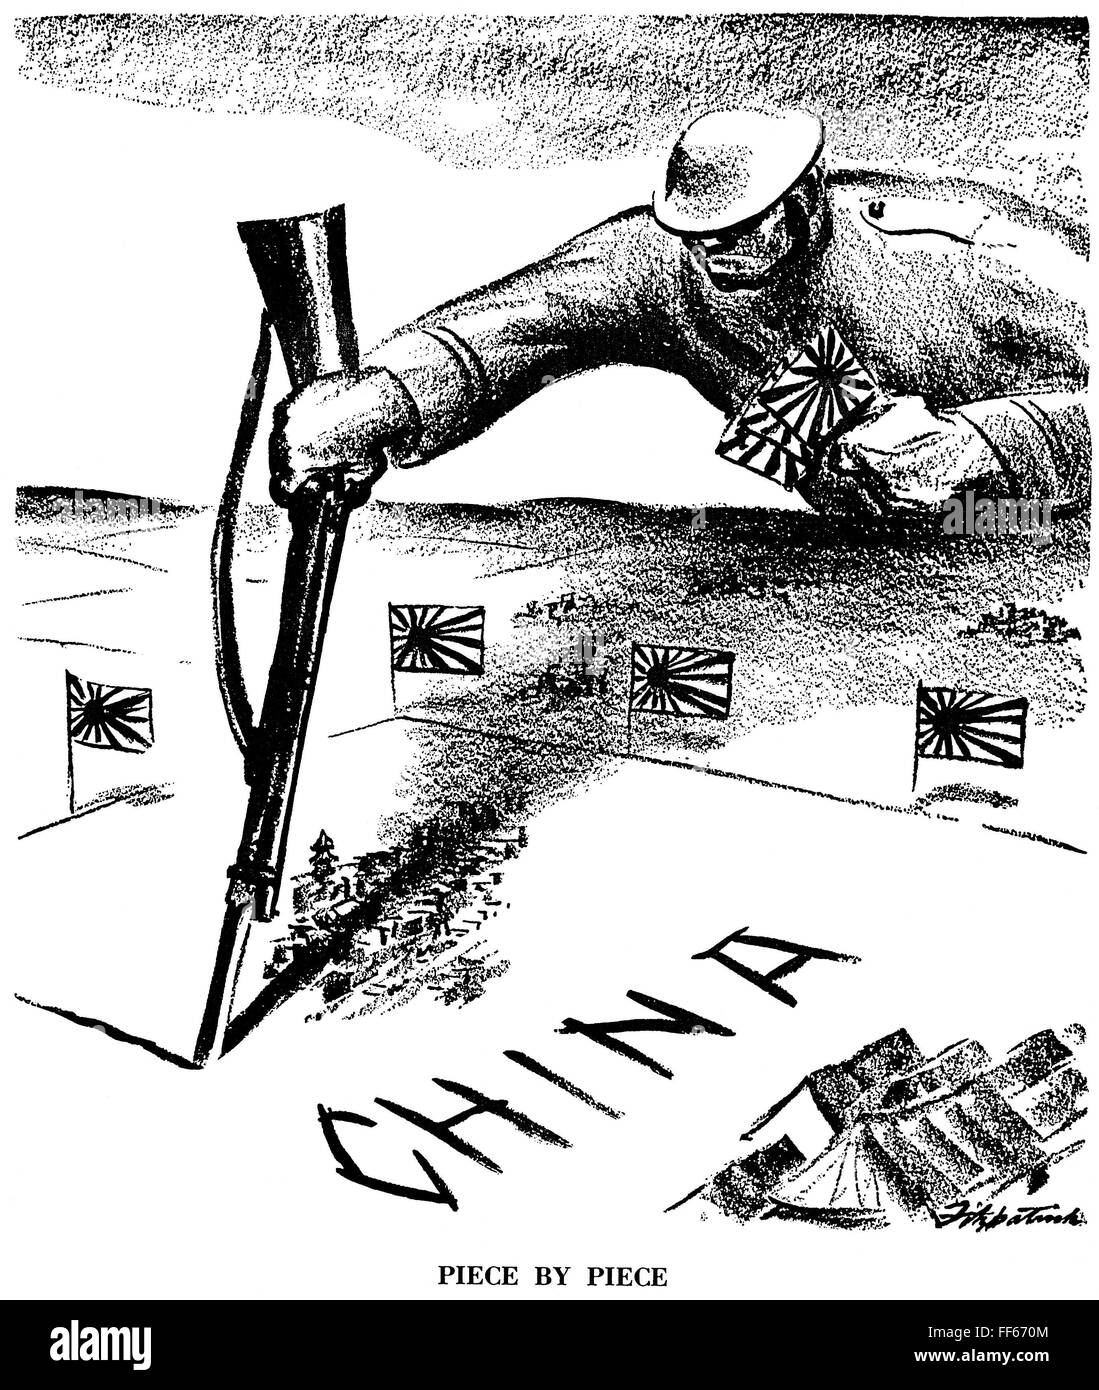 Japan Imperialism N Piece By Piece American Cartoon By Stock Photo Royalty Free